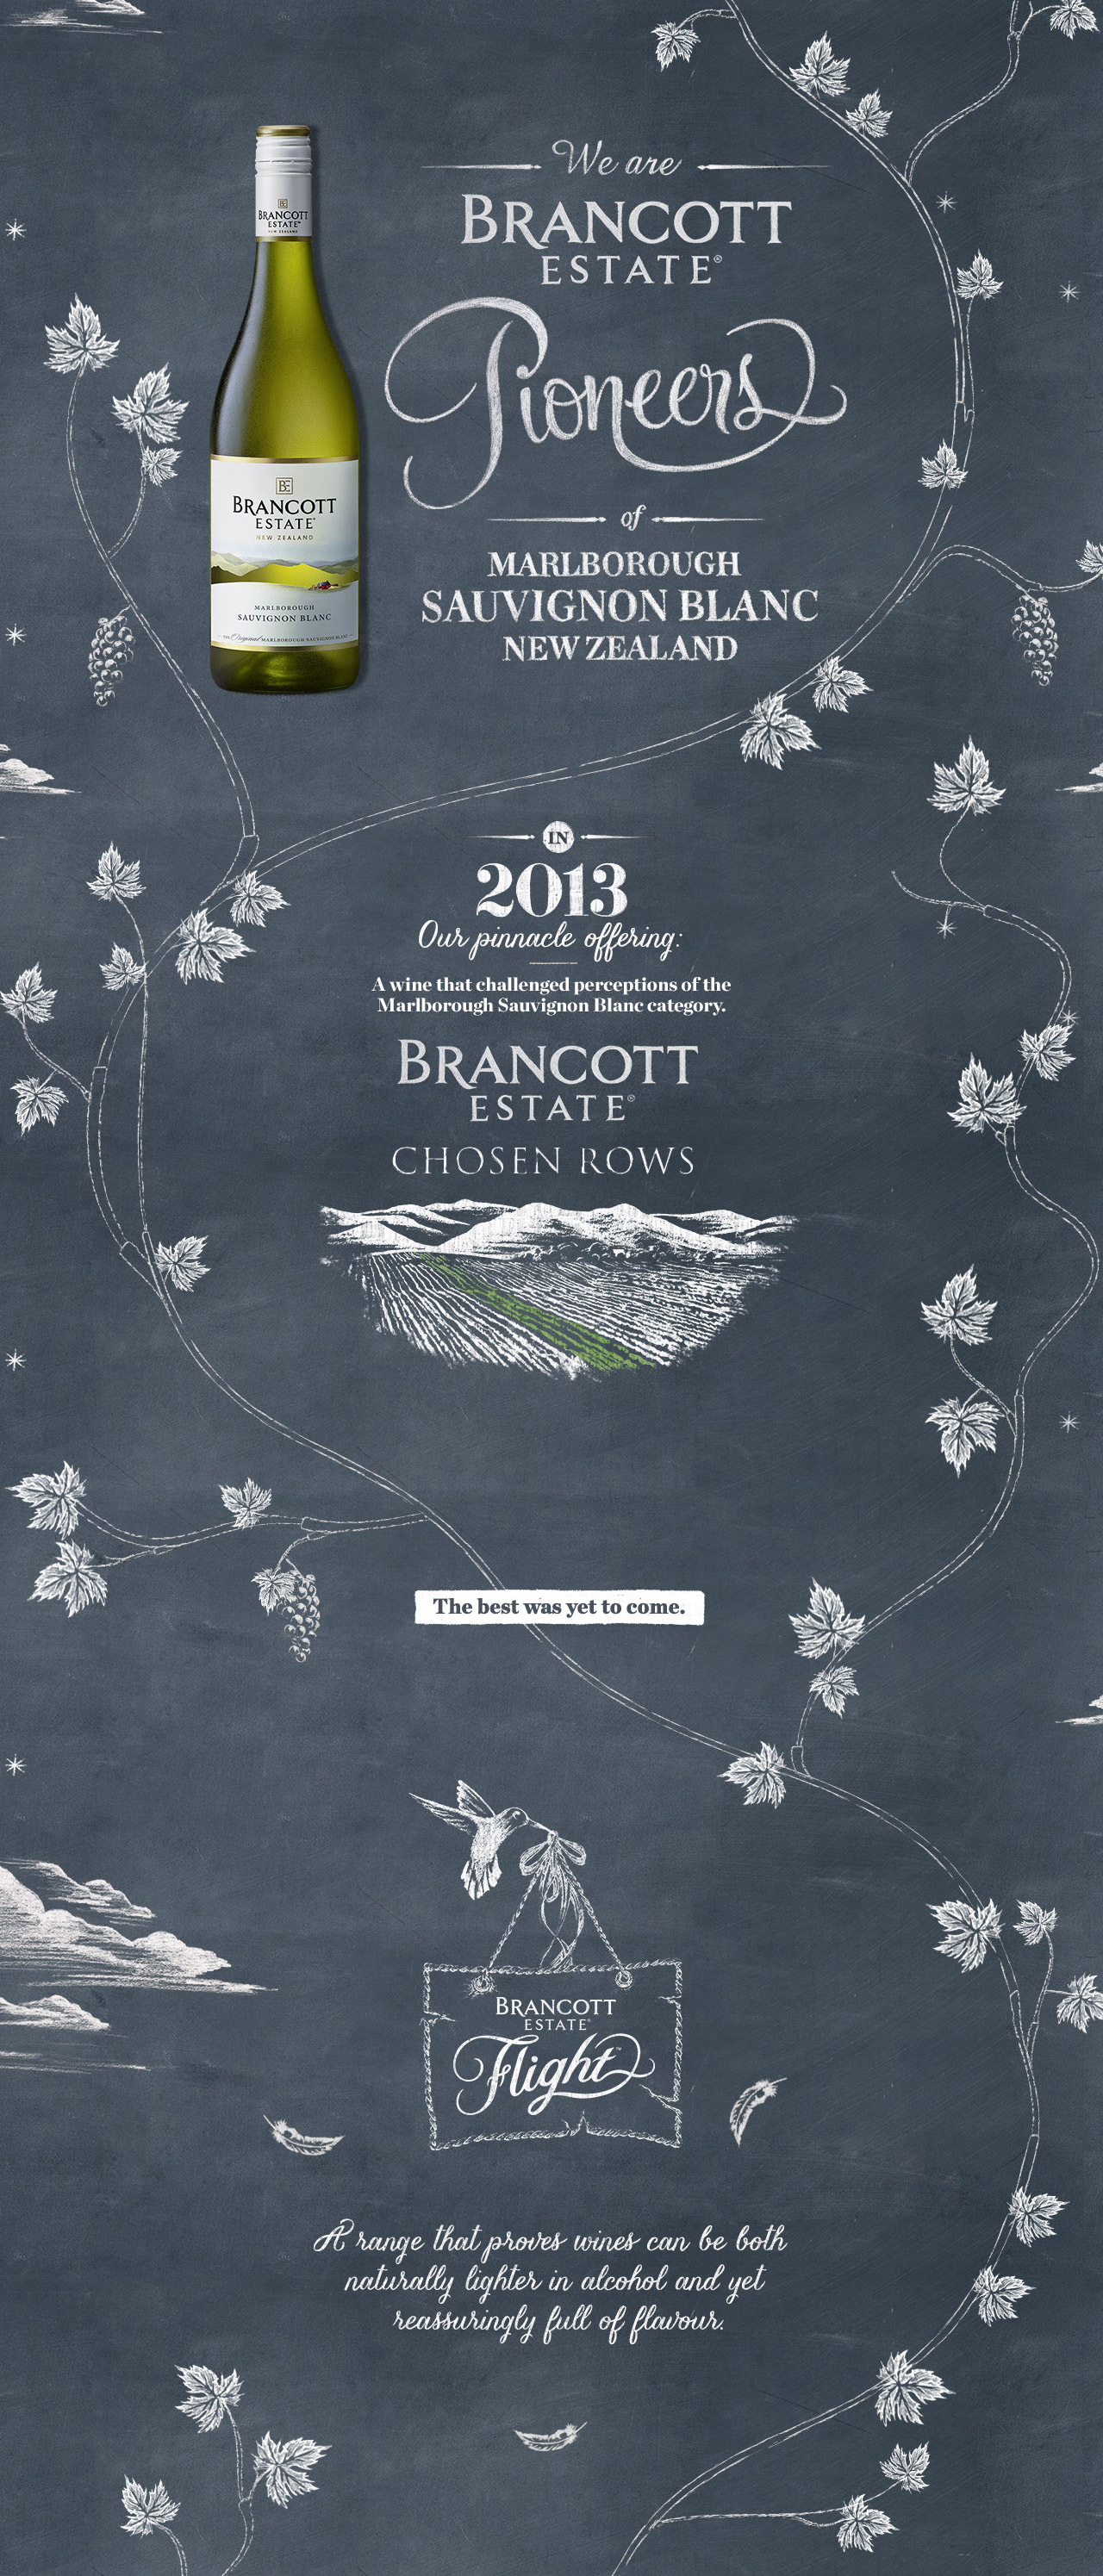 Brancott Estate Pioneers Website Screenshot